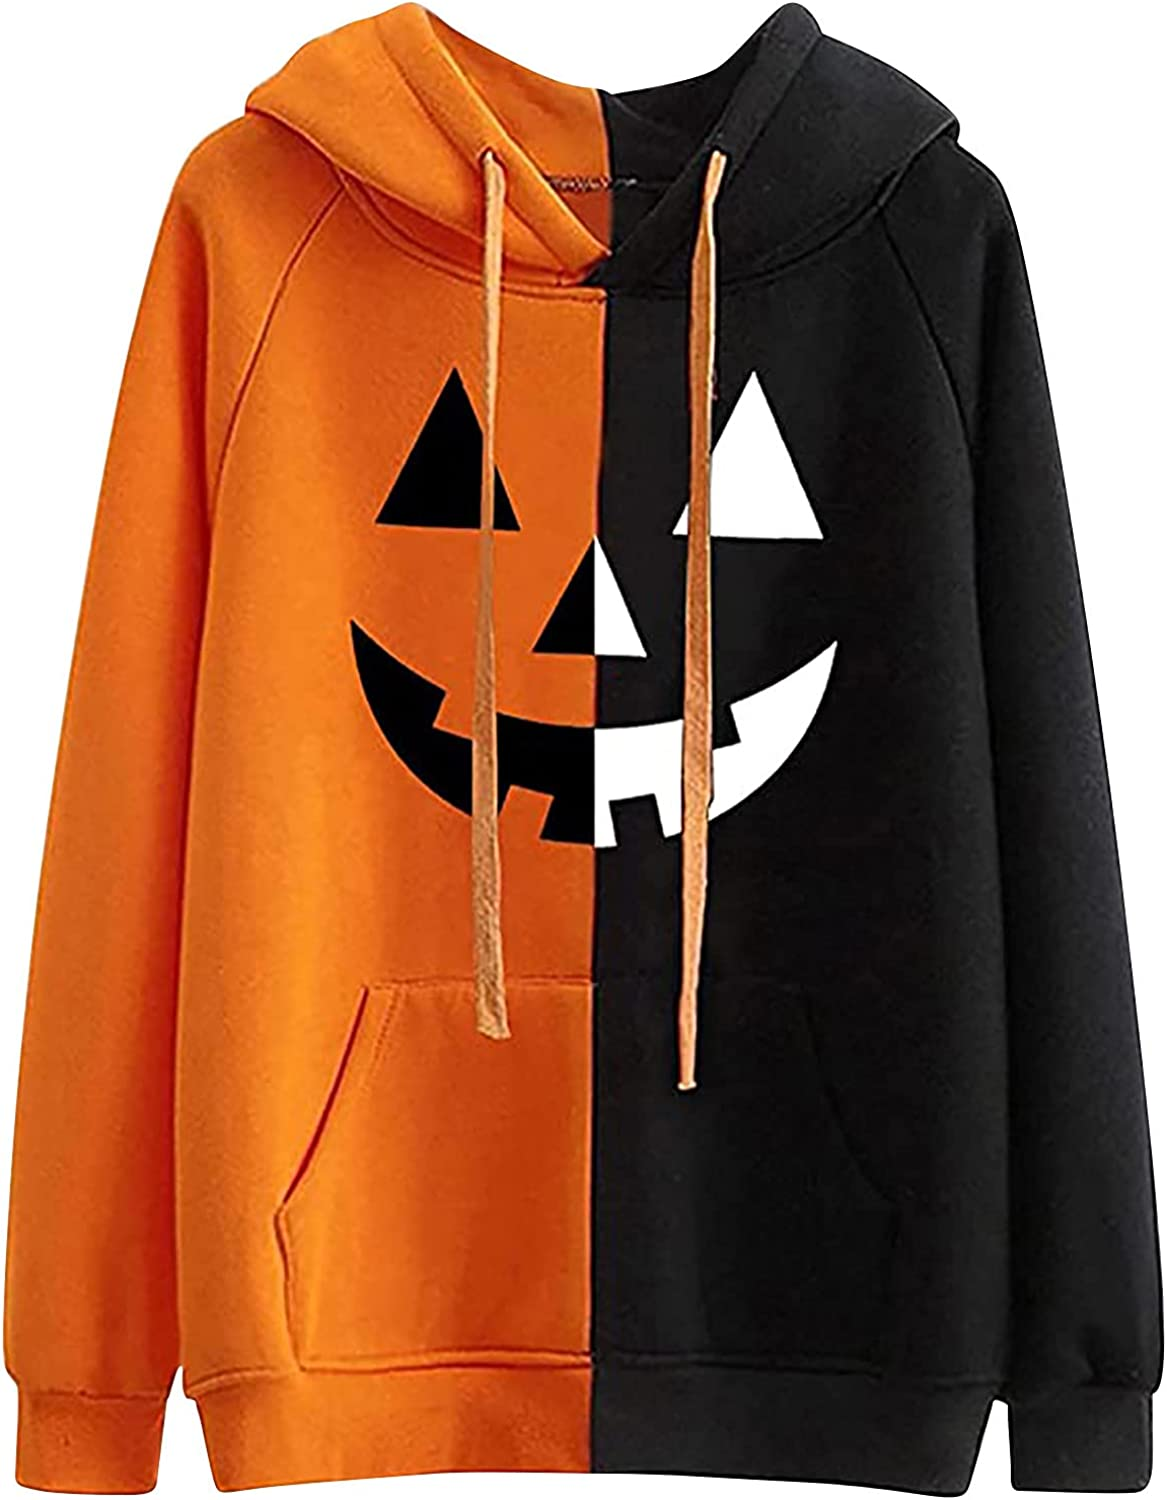 Halloween Two-Color Stitching Smile Color Block Print Hoodie For Women Casual Long Sleeve Pockets Pullover